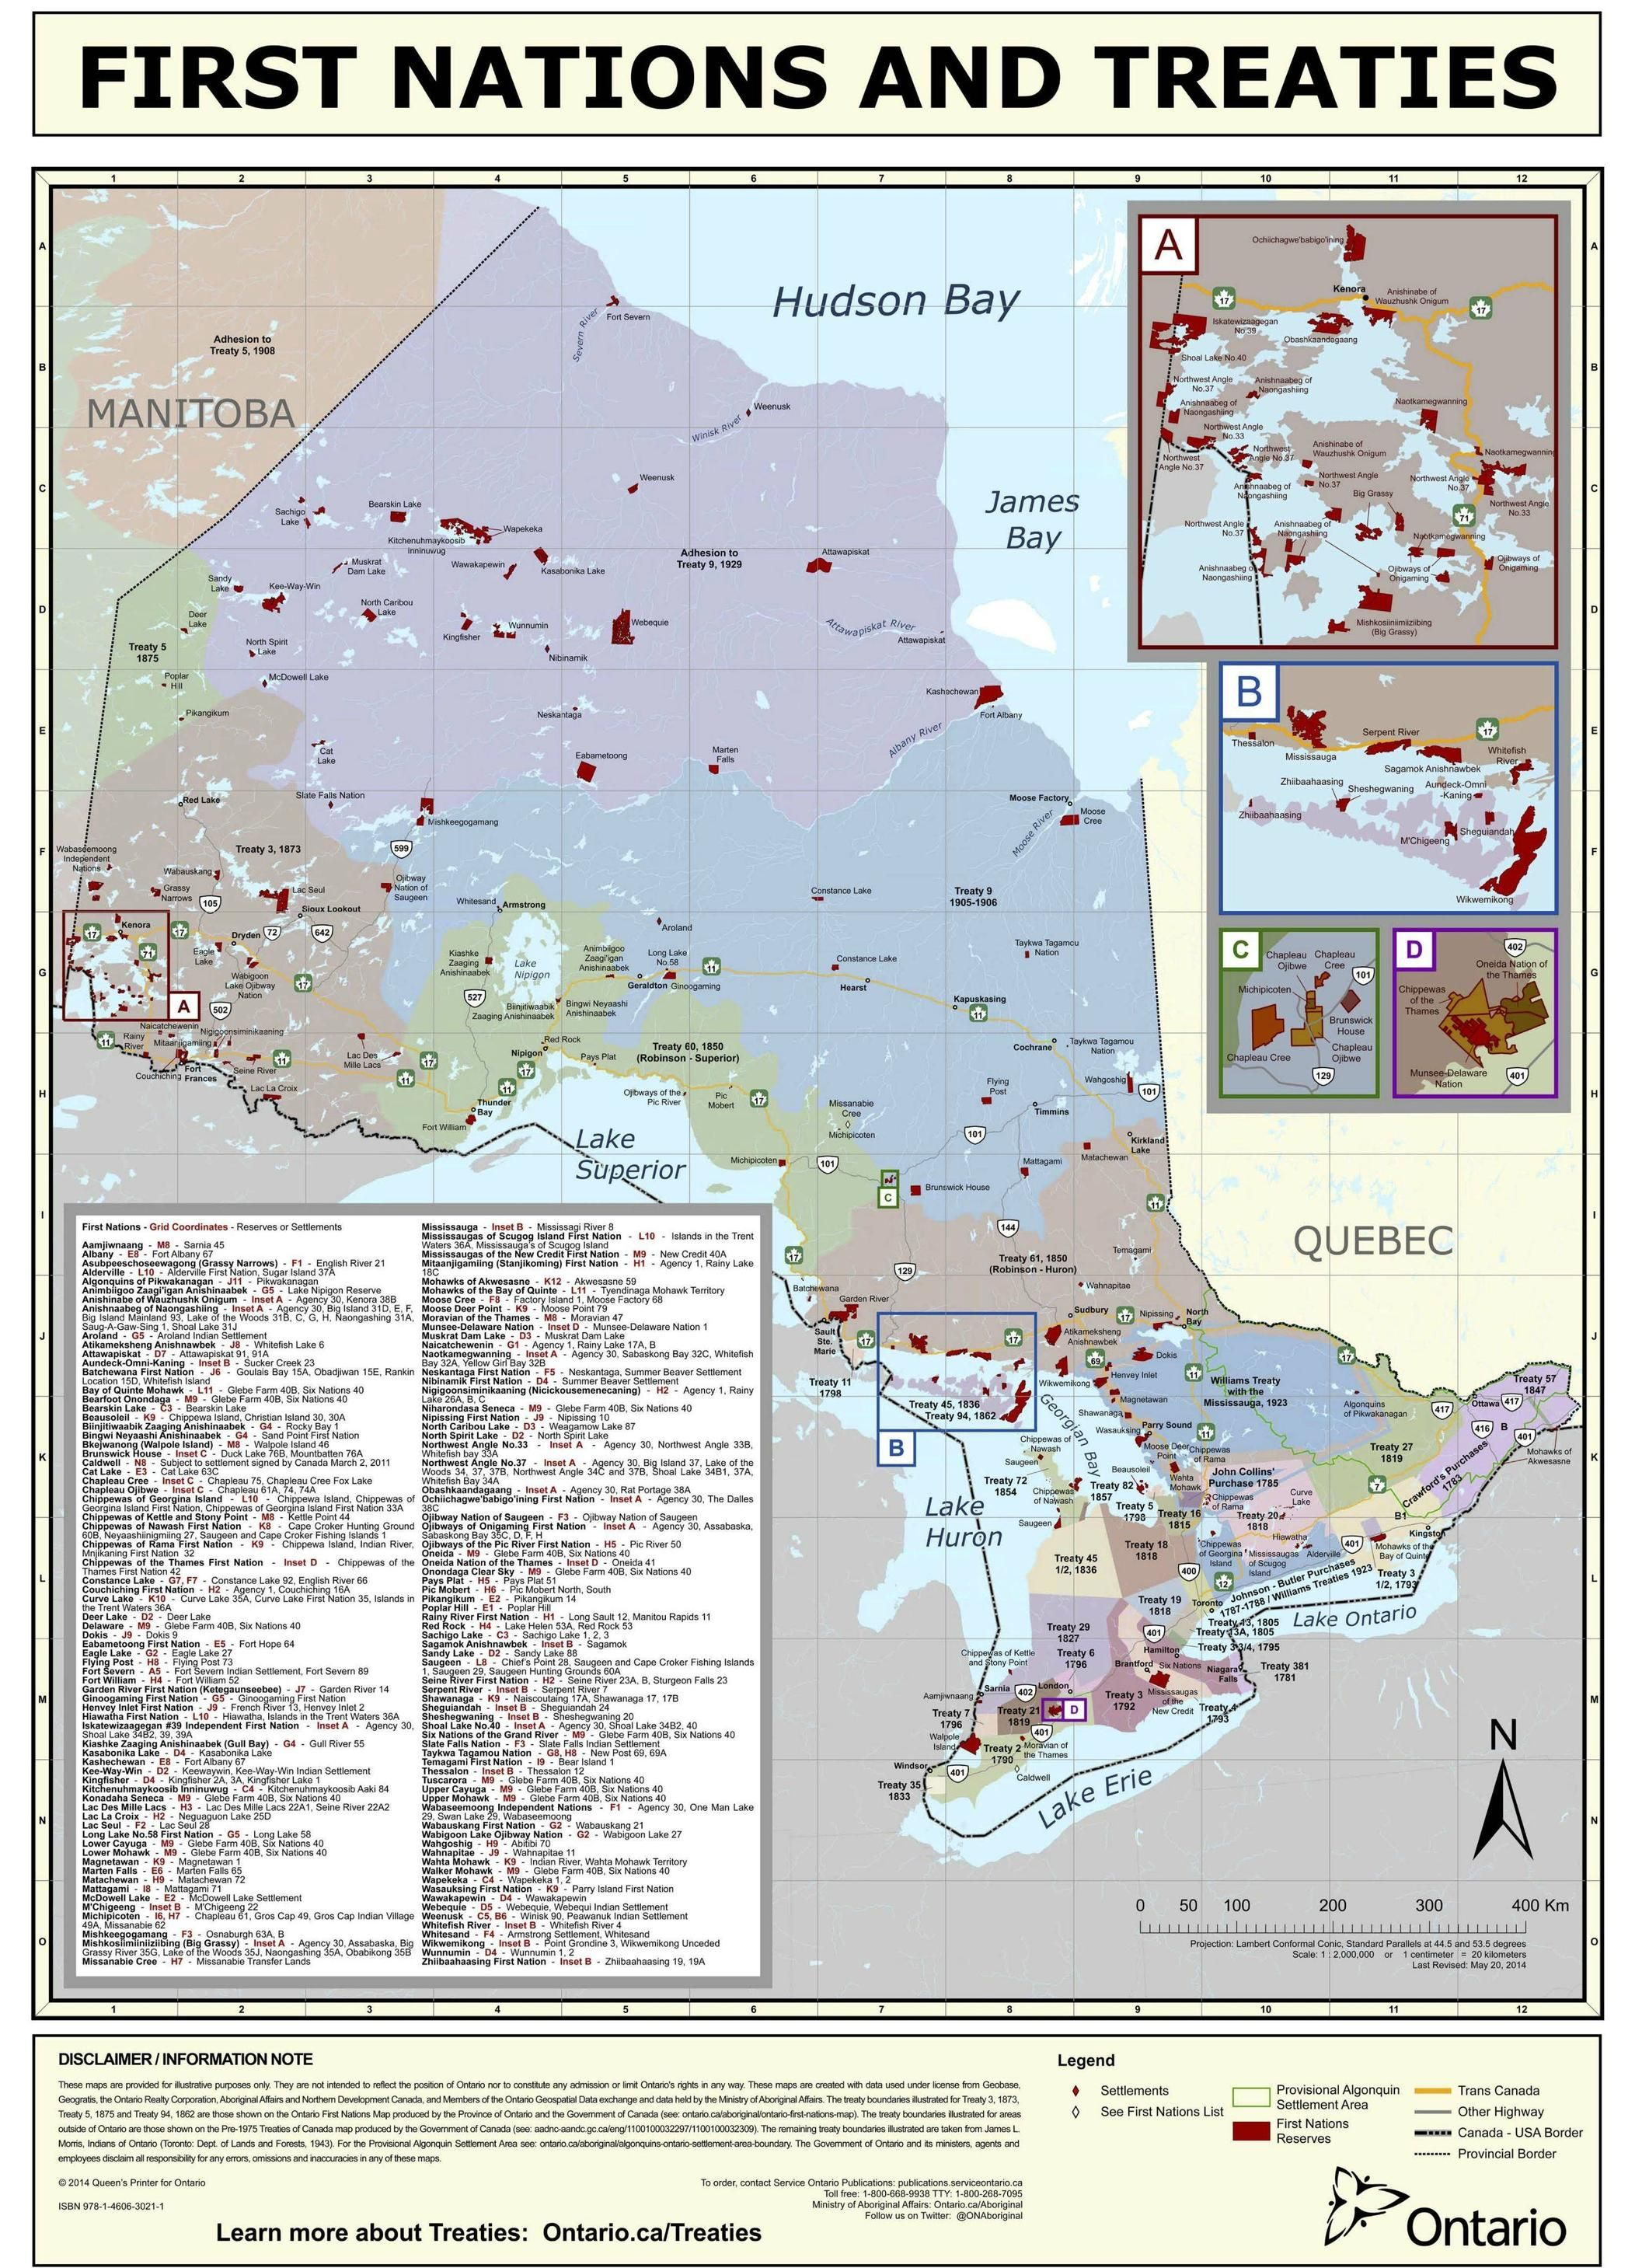 First Nations Reserves and Treaties from1781-1930 in Ontario #map #ontario #first nations